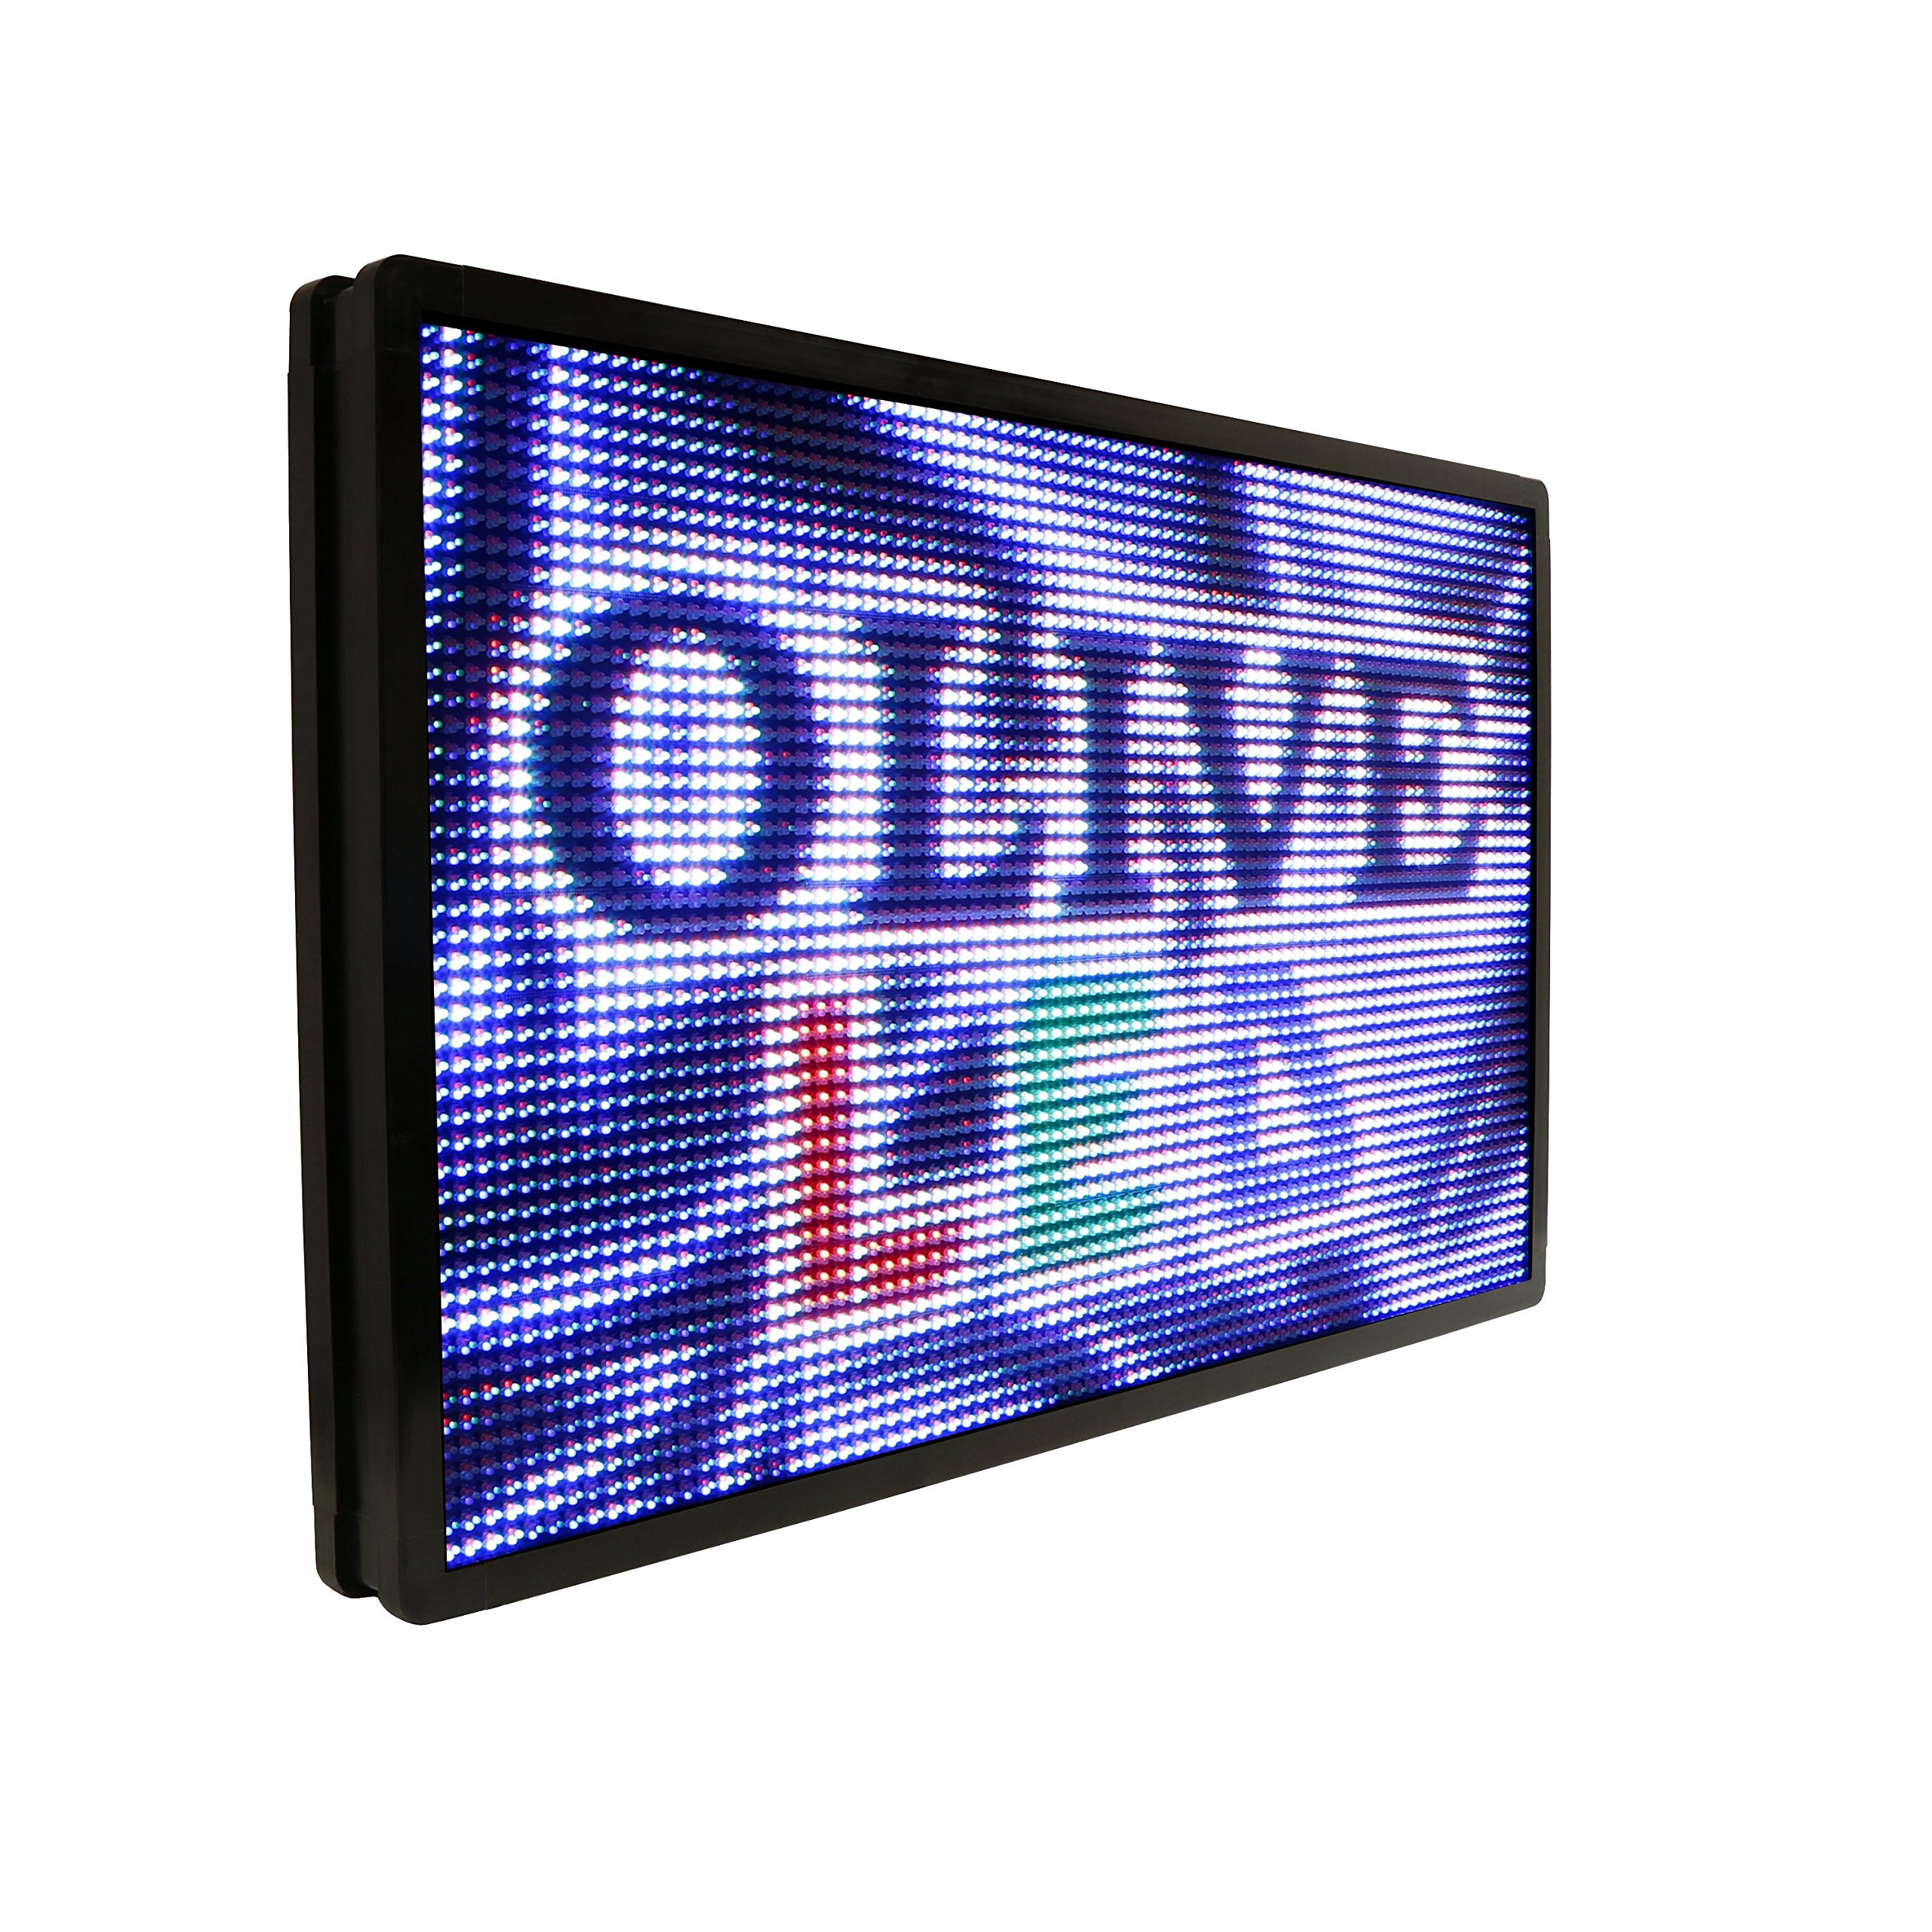 OLIVE LED Sign Full Color P26, 36''x85'' Programmable Scrolling Outdoor Message Display Signs EMC - Industrial Grade Business Ad Machine.